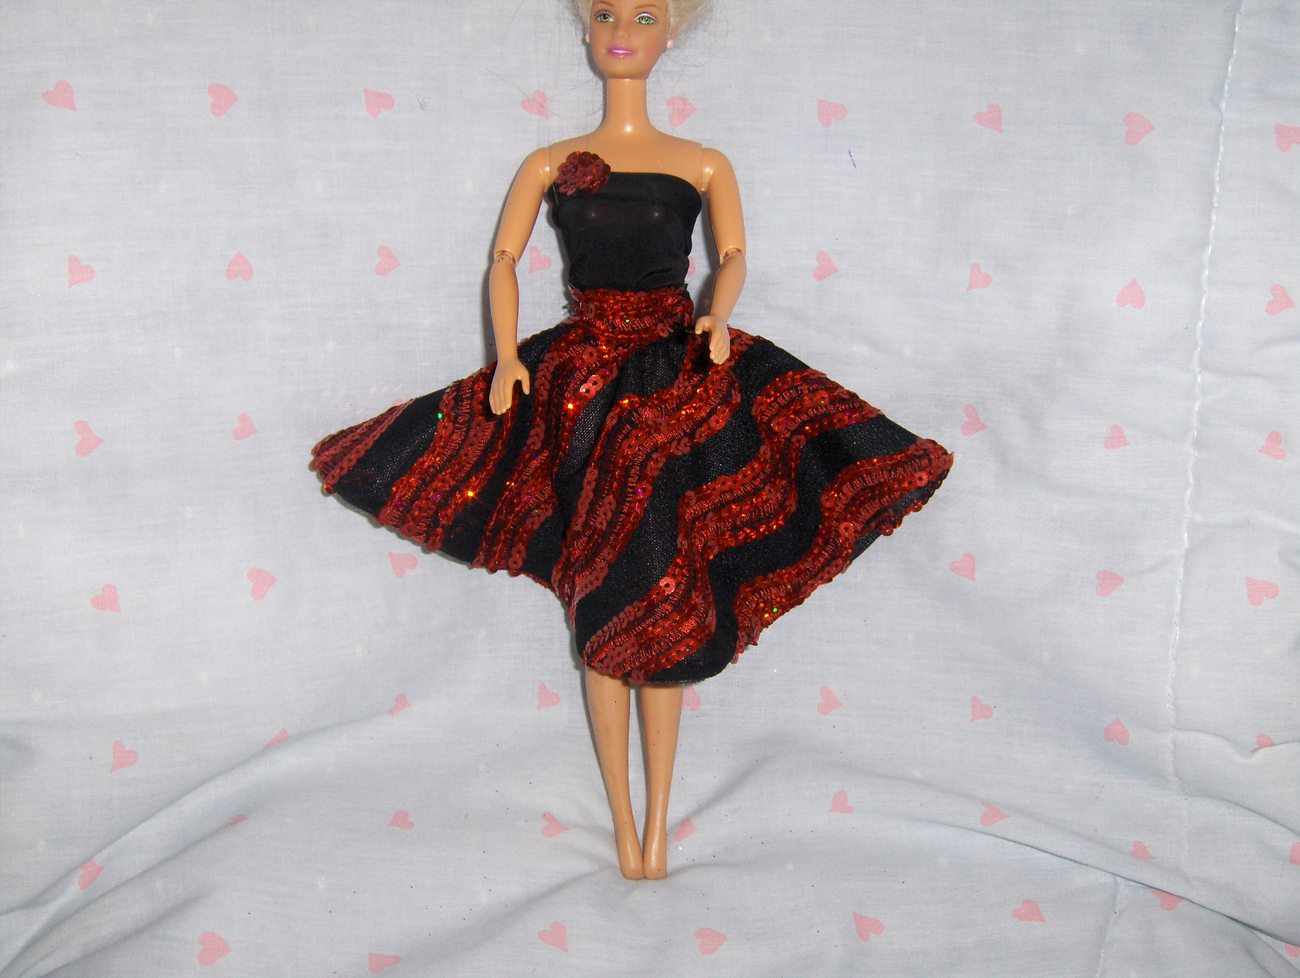 Black Spandex and Knit Party Dress with Iridescent Red Sequins fits Barbie and m